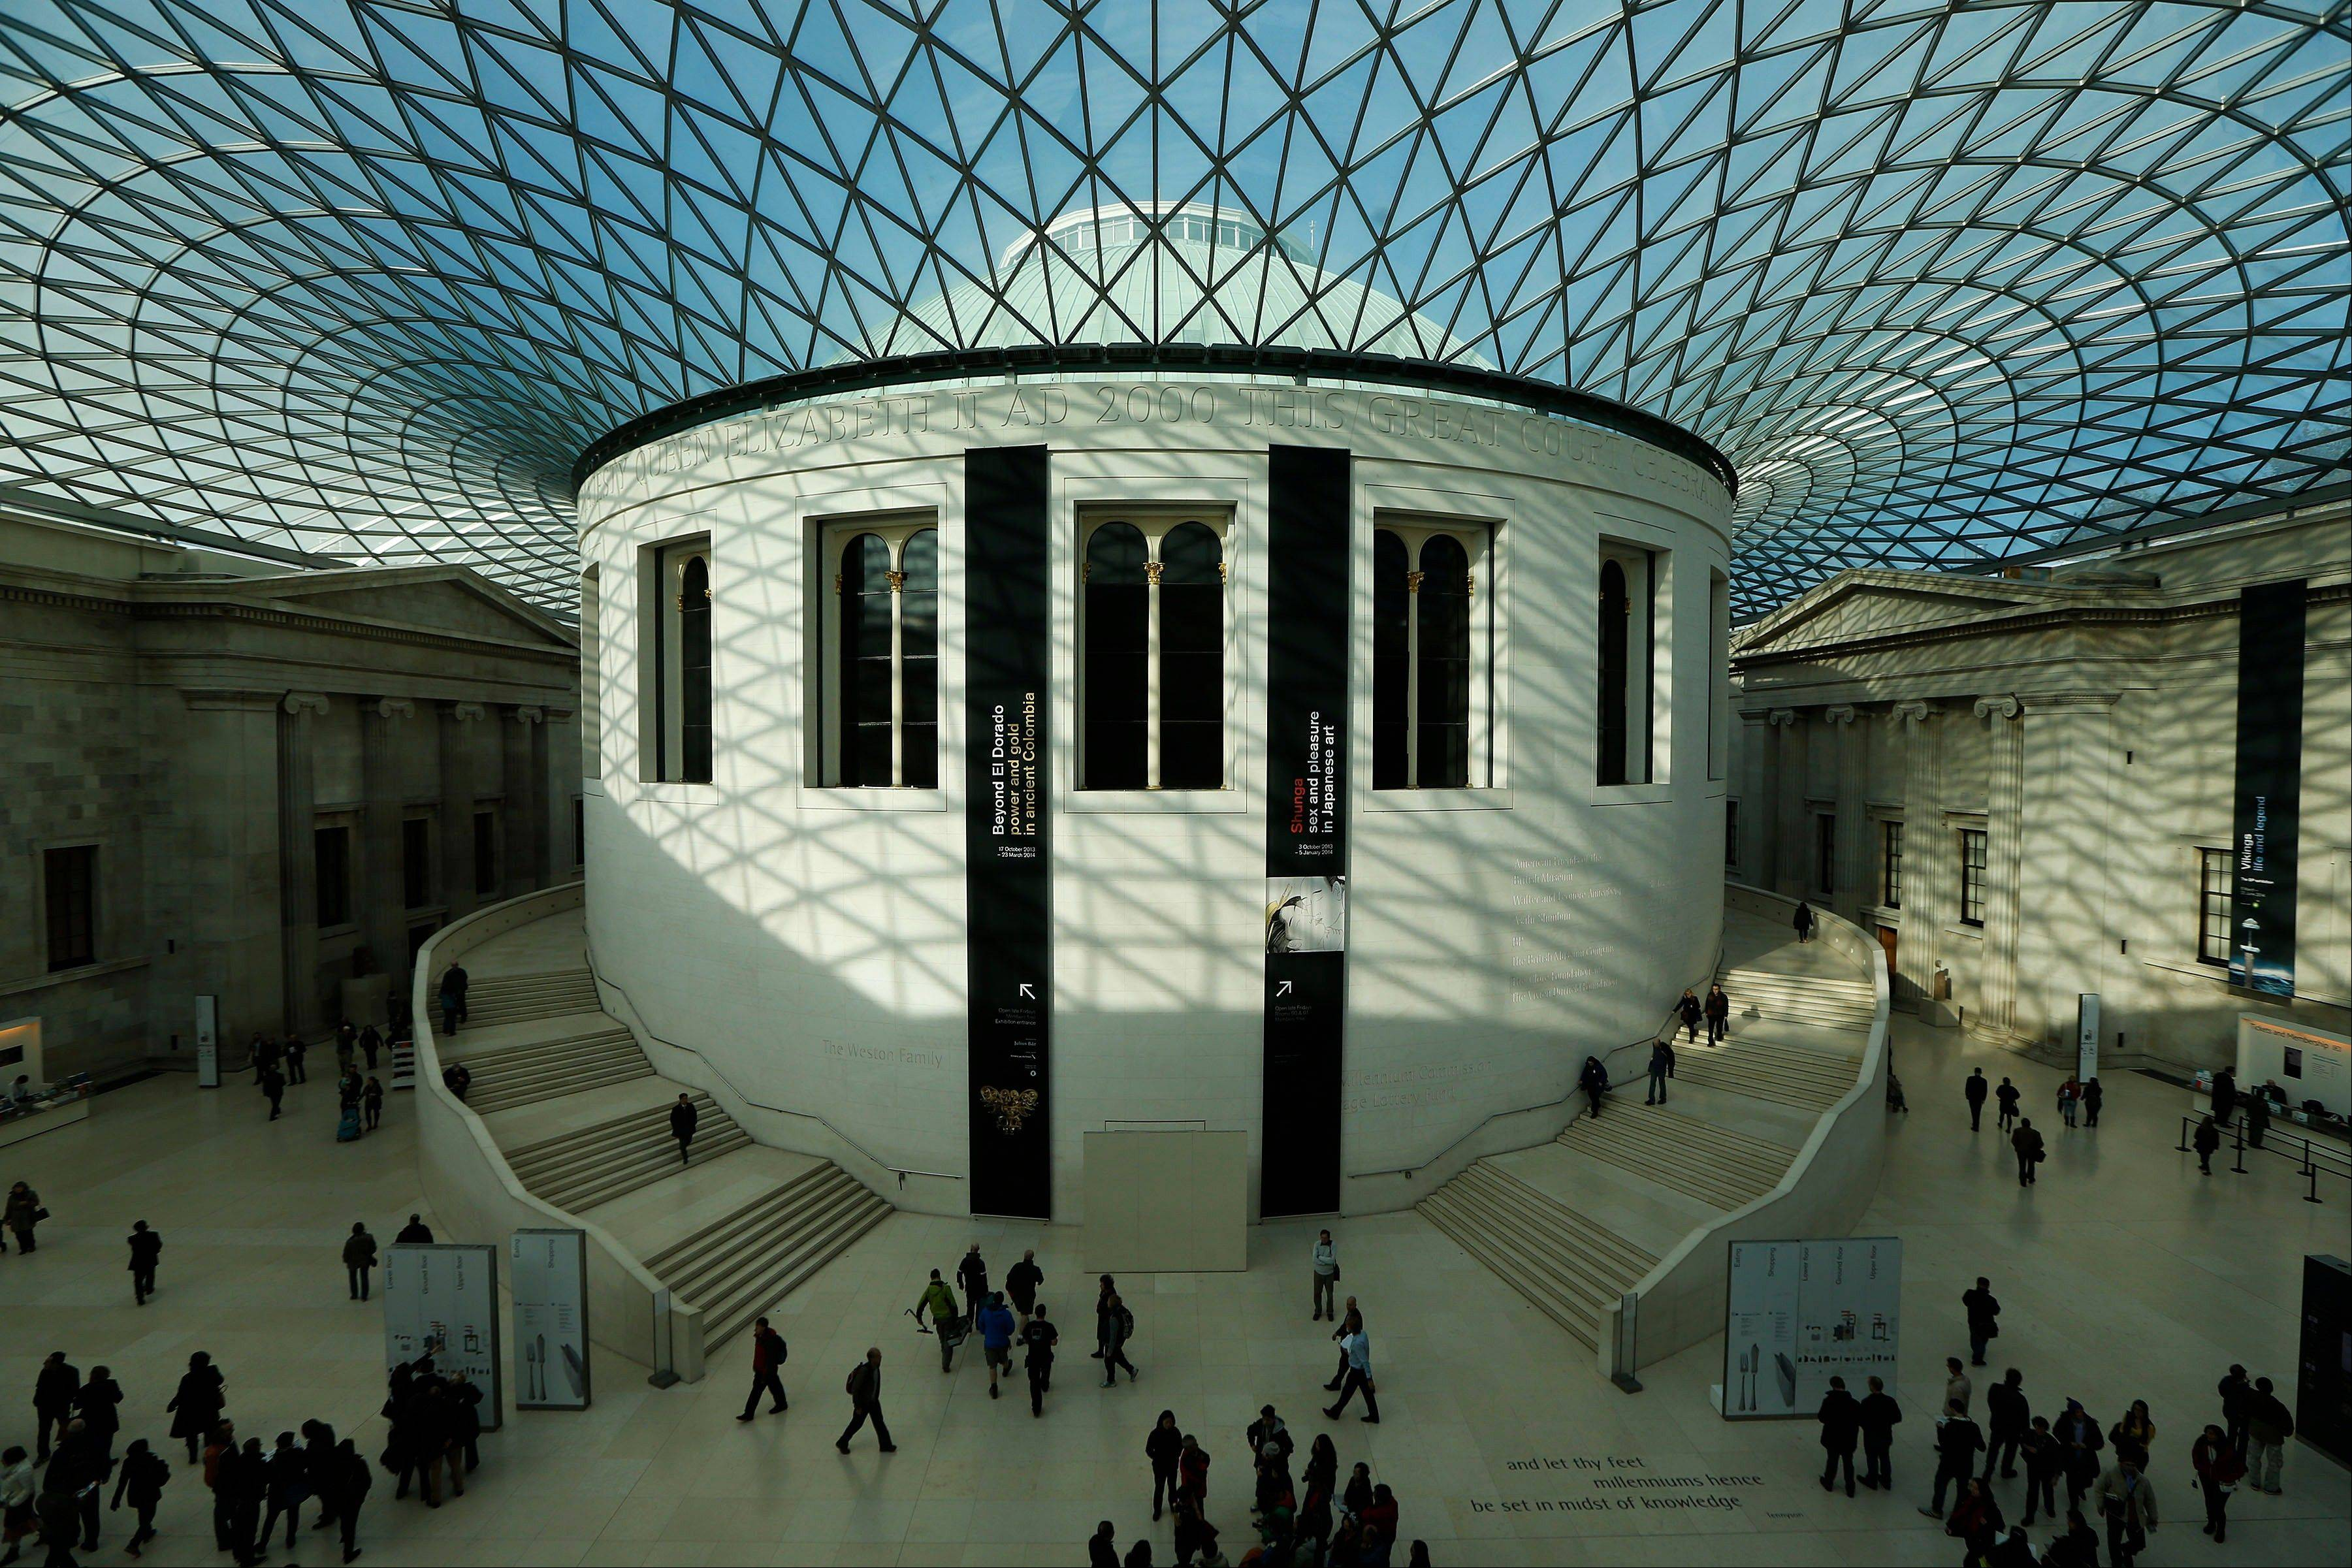 People visit the British Museum in London recently. The museum's collection covers millennia of human culture, from ancient to modern times, and best of all, admission is free.